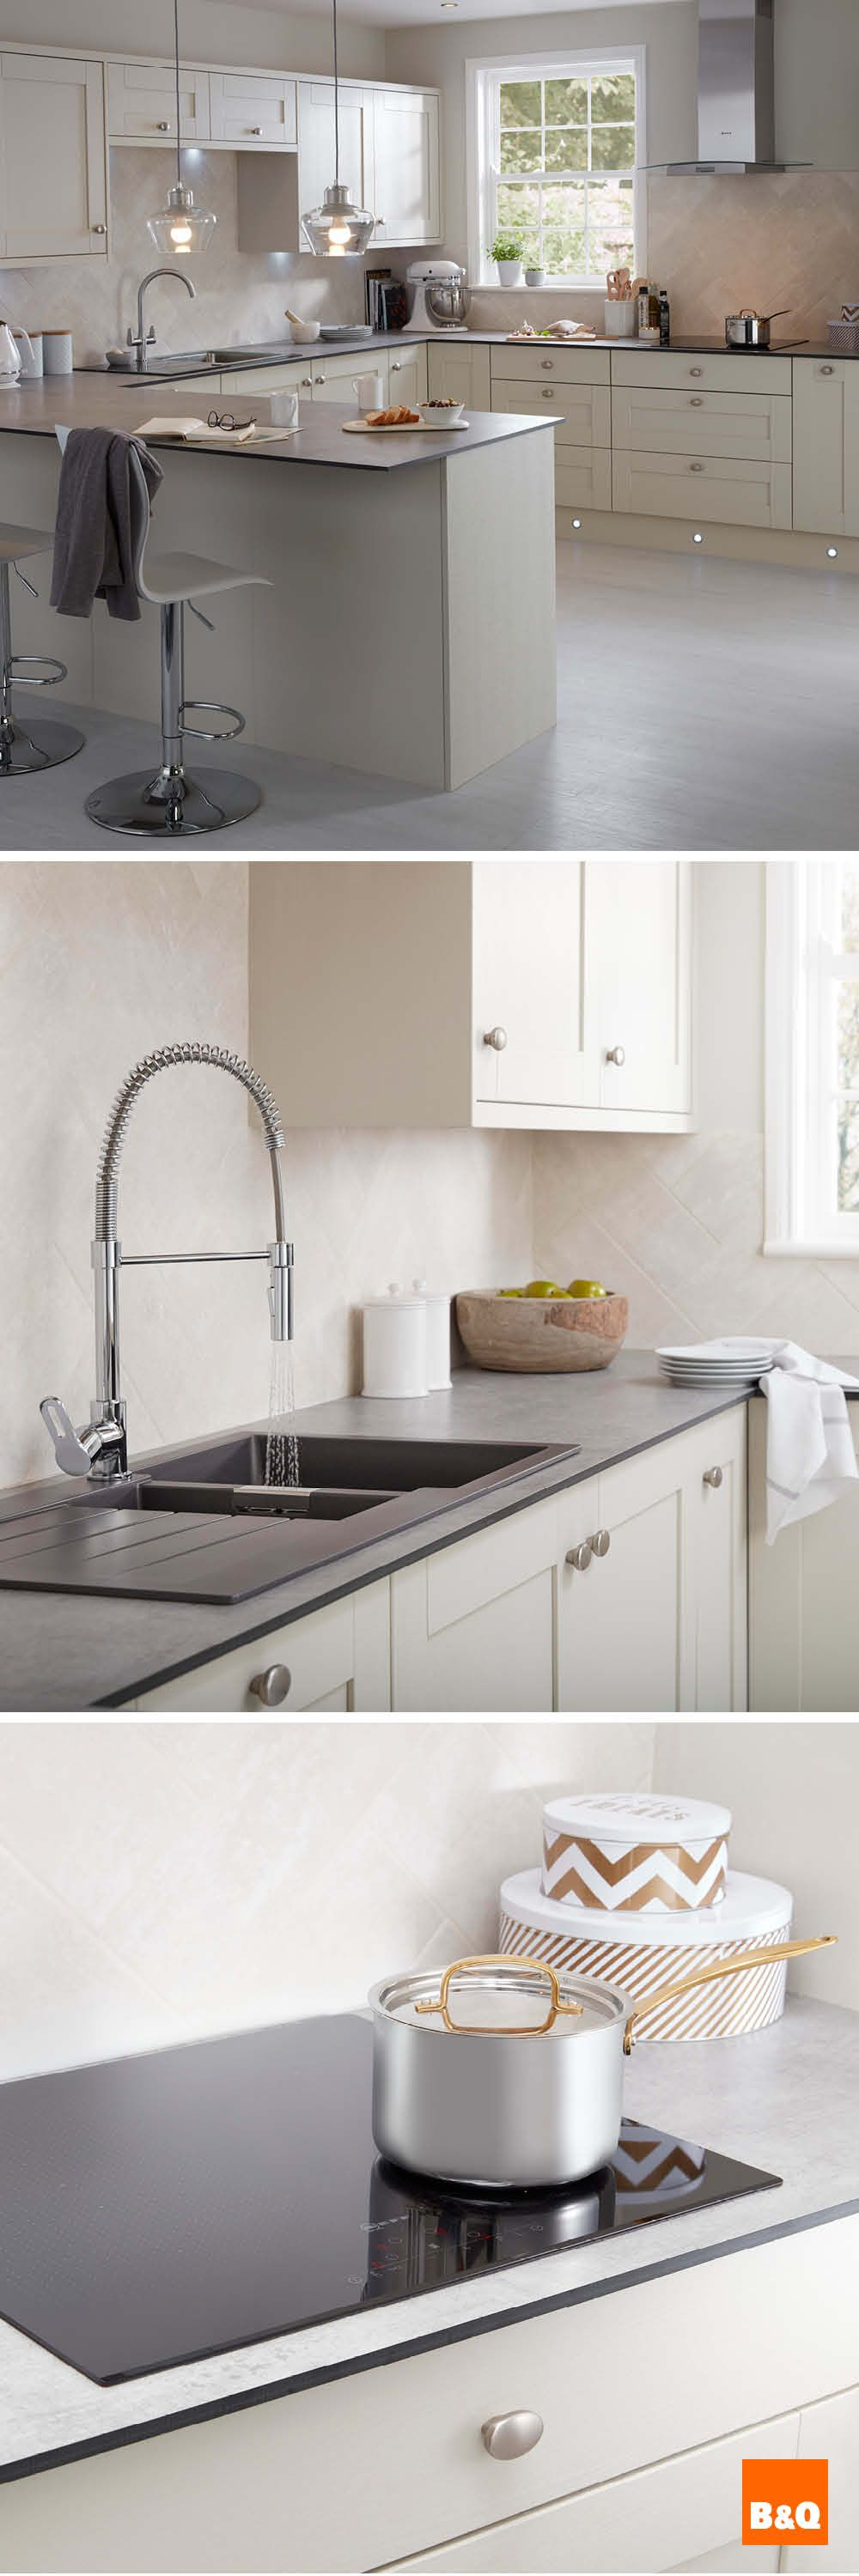 Super slim soft grey slate kitchen worktops teamed with classic ...